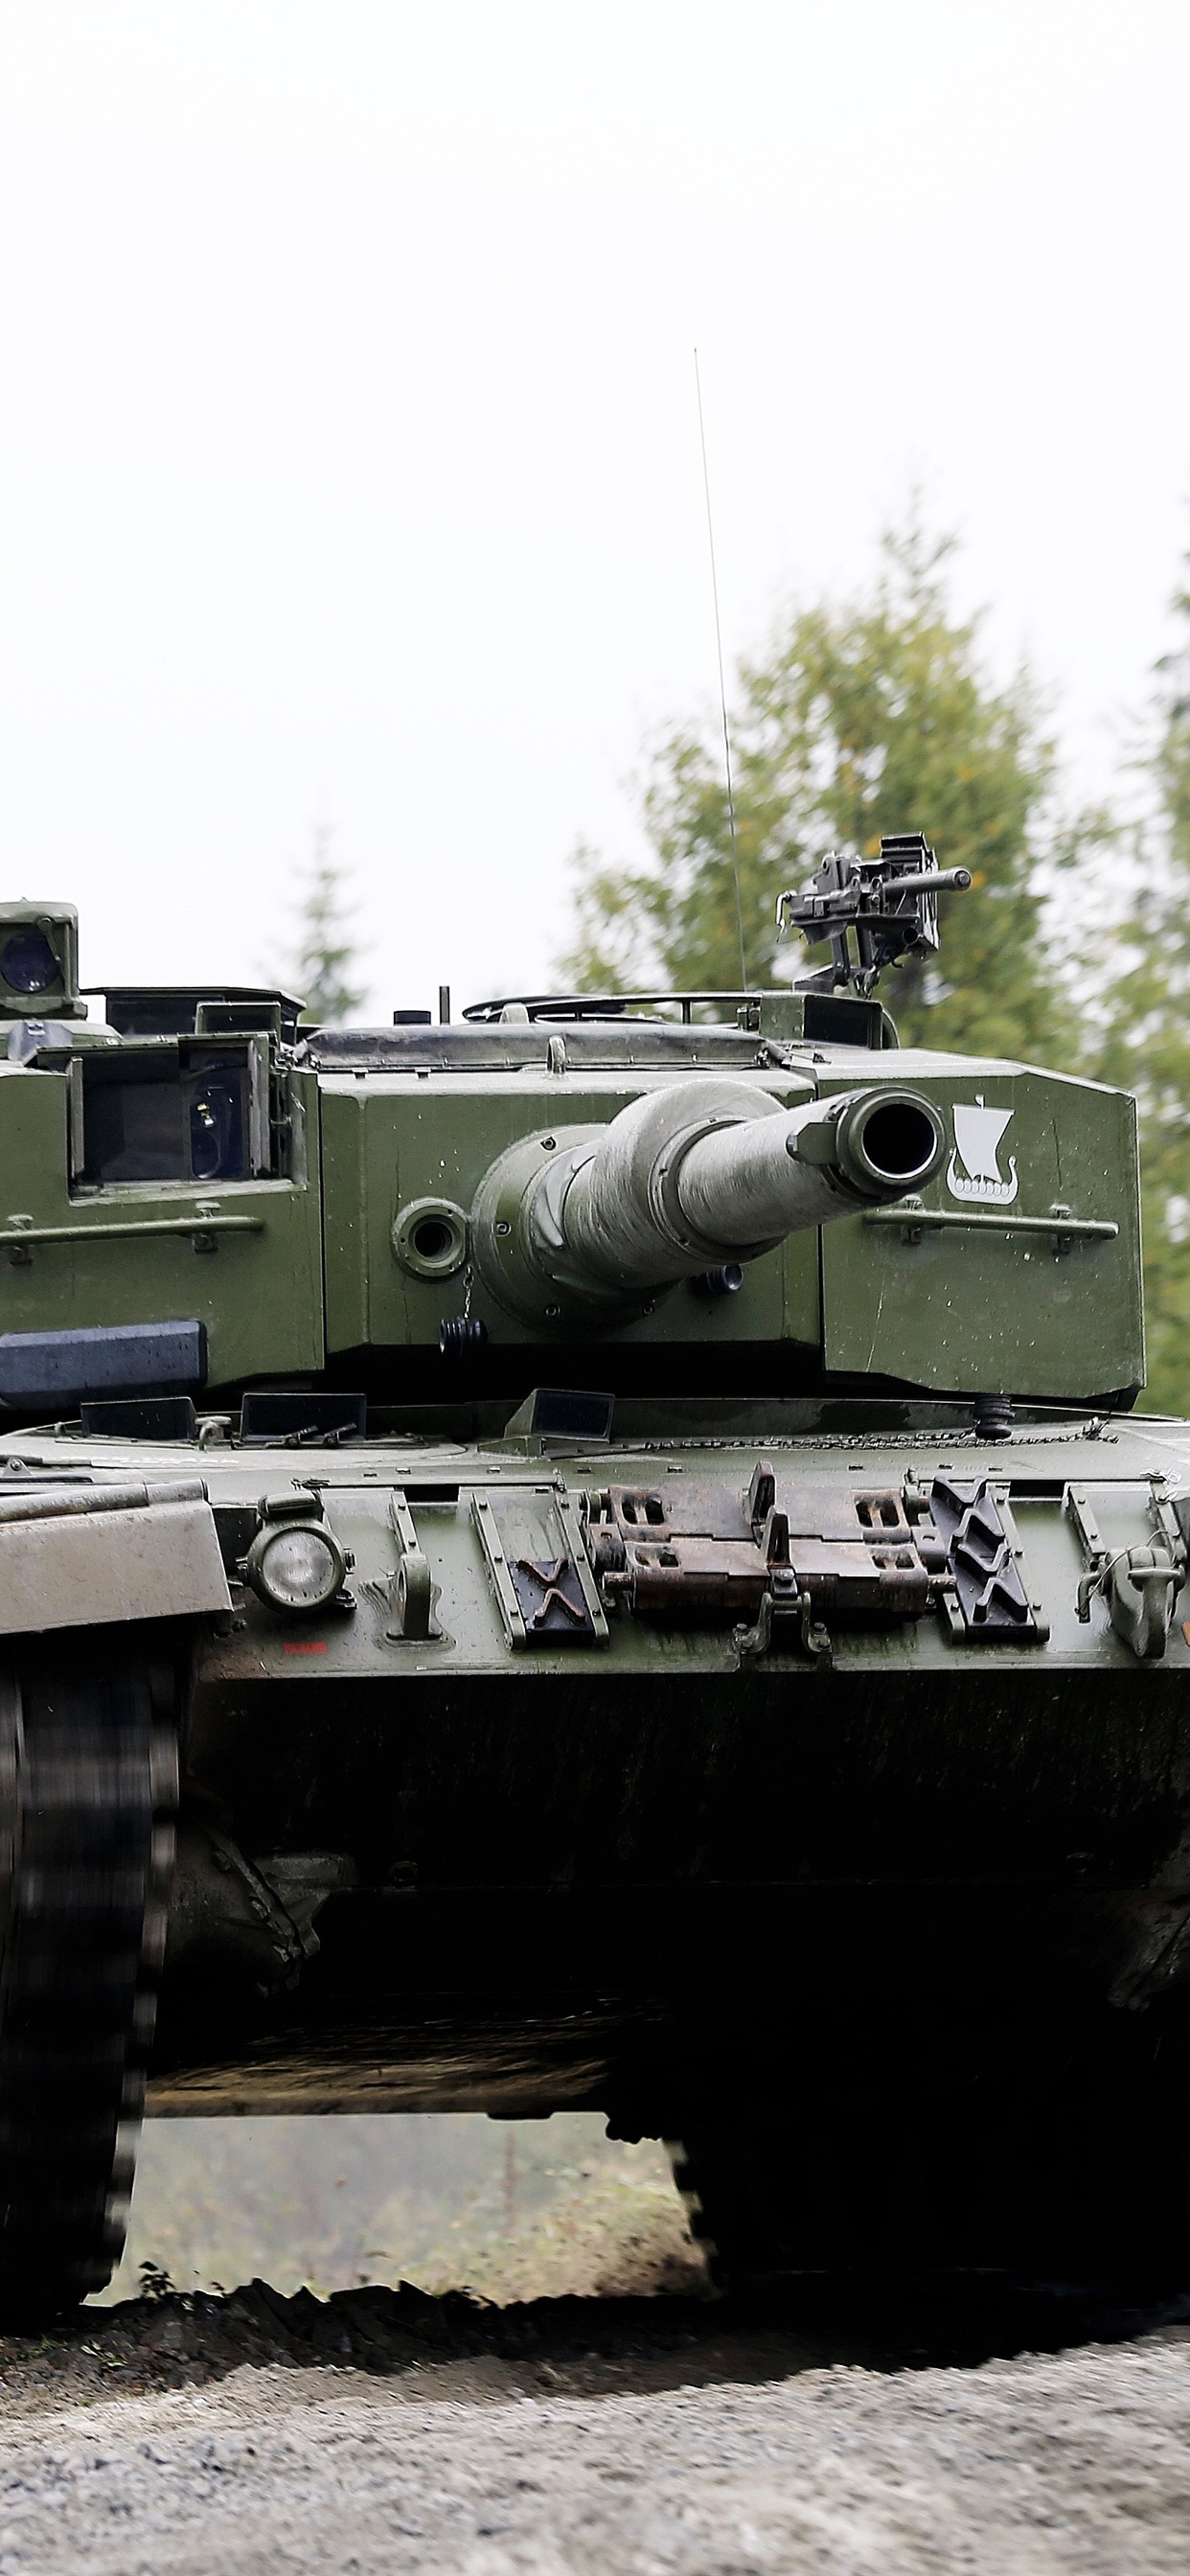 Tank Front View Speed 1242x2688 Iphone Xs Max Wallpaper